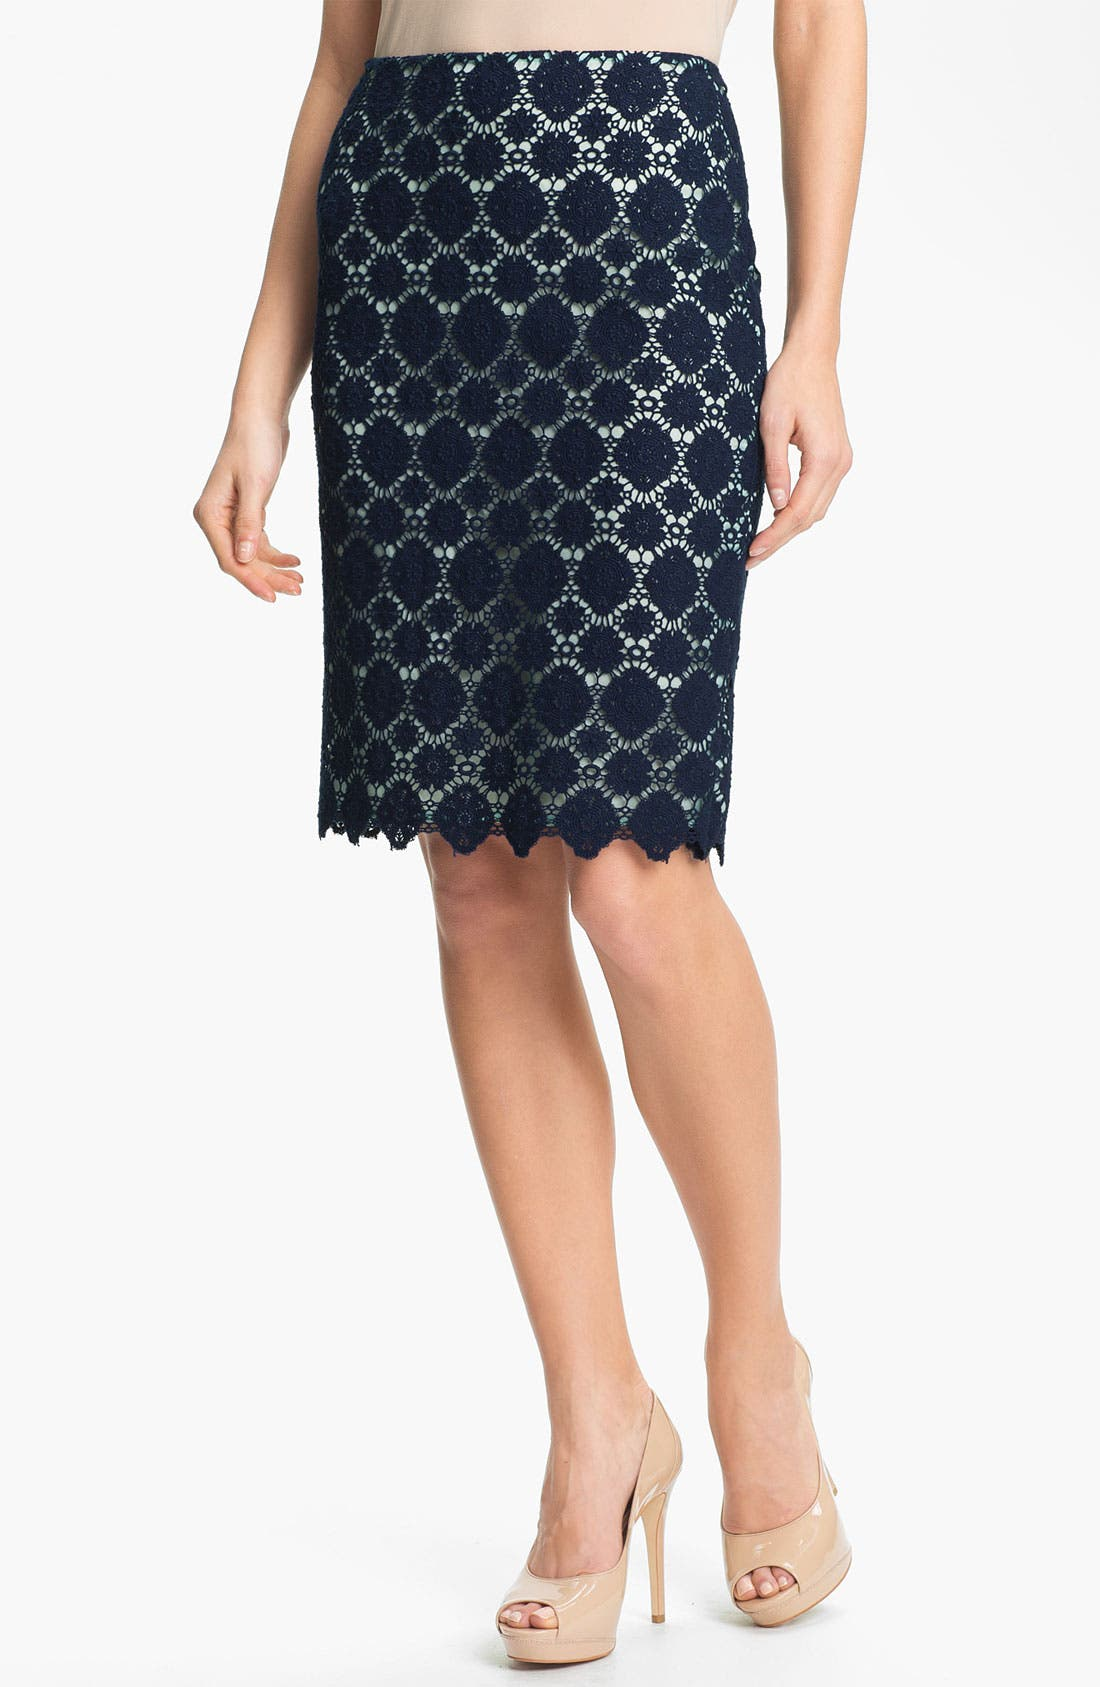 Alternate Image 1 Selected - Vince Camuto Crochet Lace Pencil Skirt